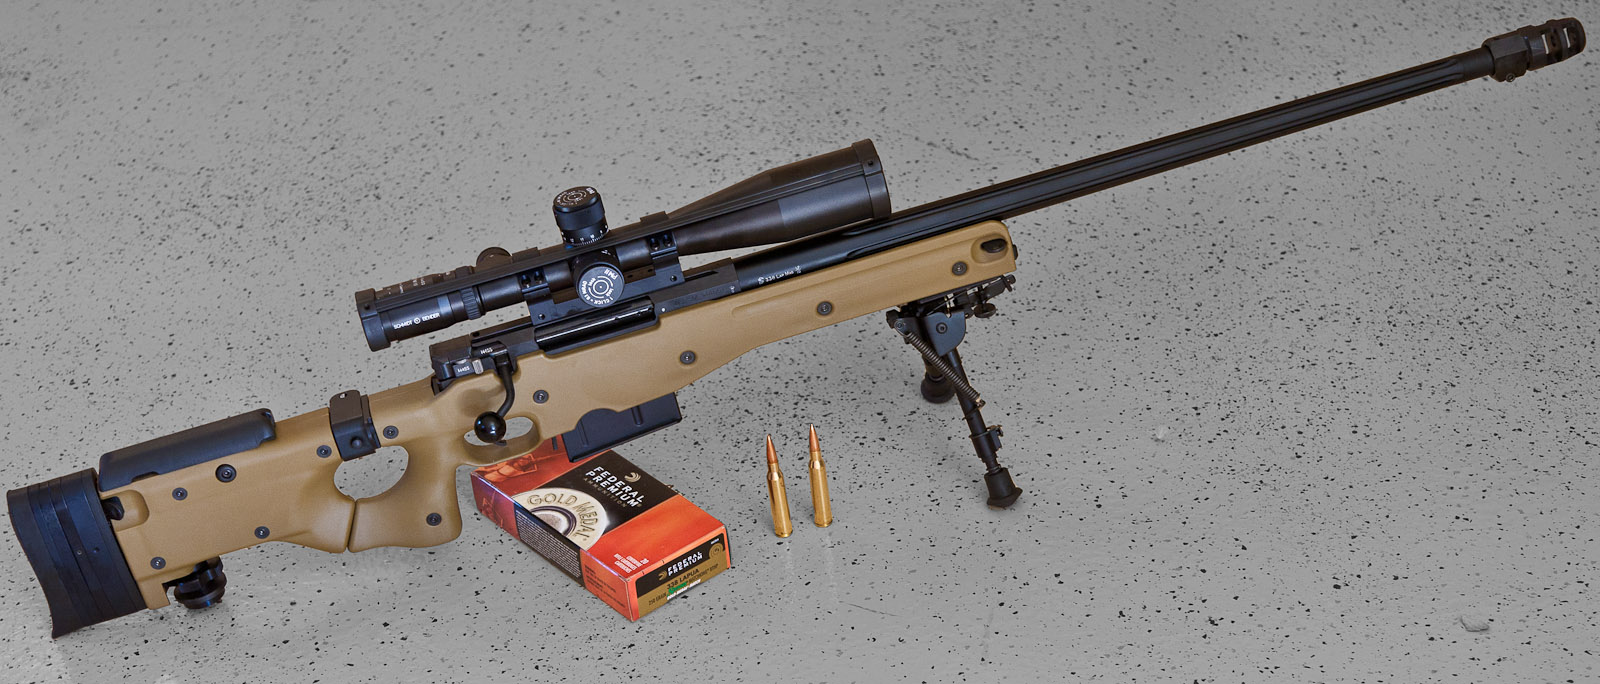 Images of Accuracy International Aw 338 Sniper Rifle | 1600x684